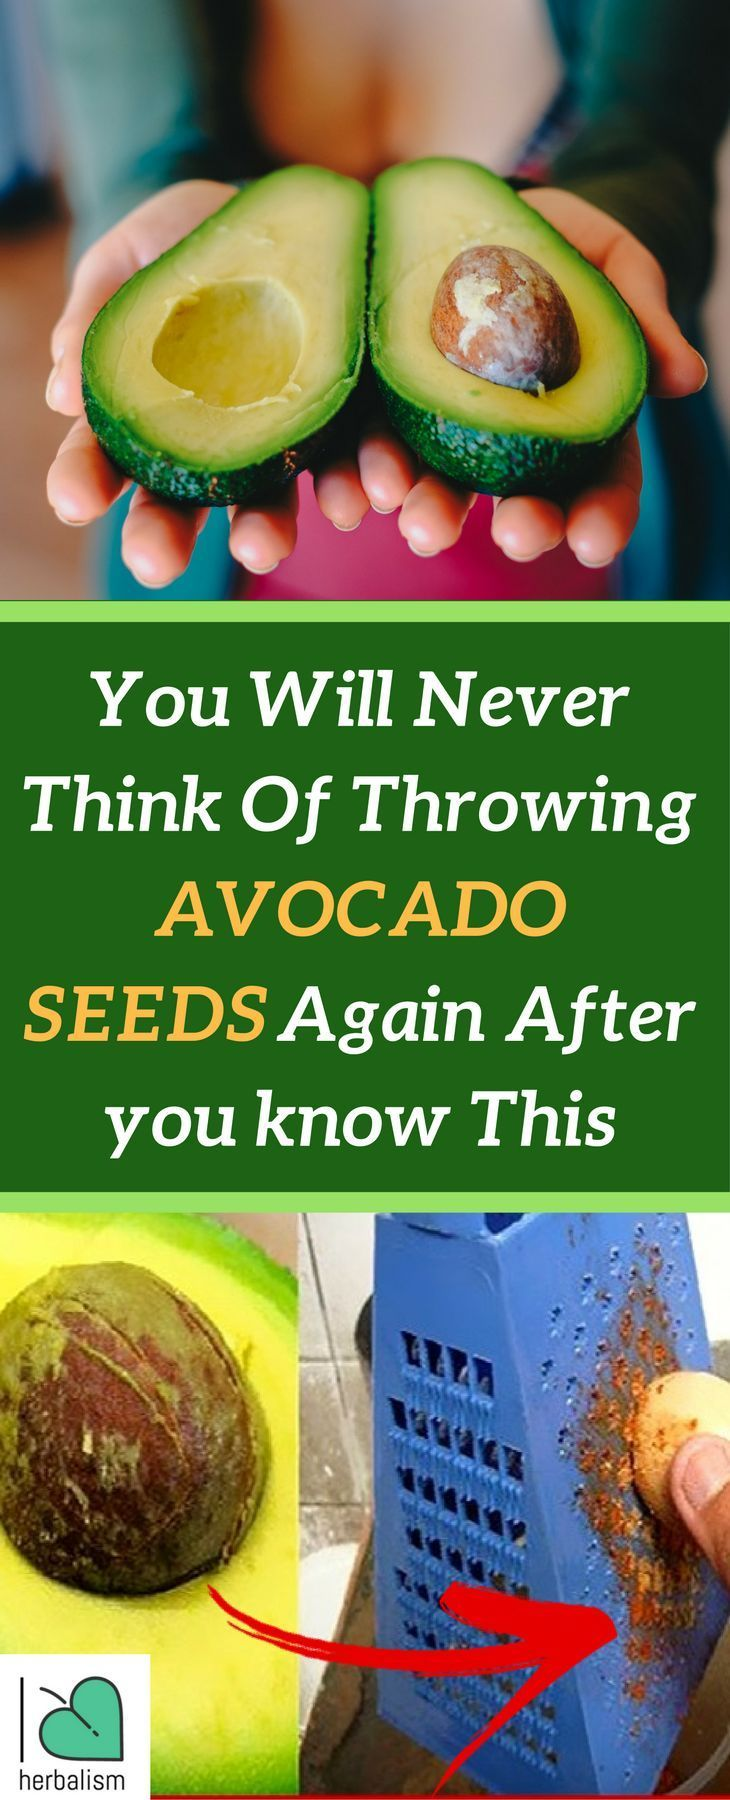 What are the health benefits of eating avocado seeds? They contain antifungal, antibiotic, antimicrobial, insecticidal, larvicidal, amoebicidal, giardicidal, hypolipidemic, and antihypertensive properties. Eating avocado seeds also has other valuable health benefits.